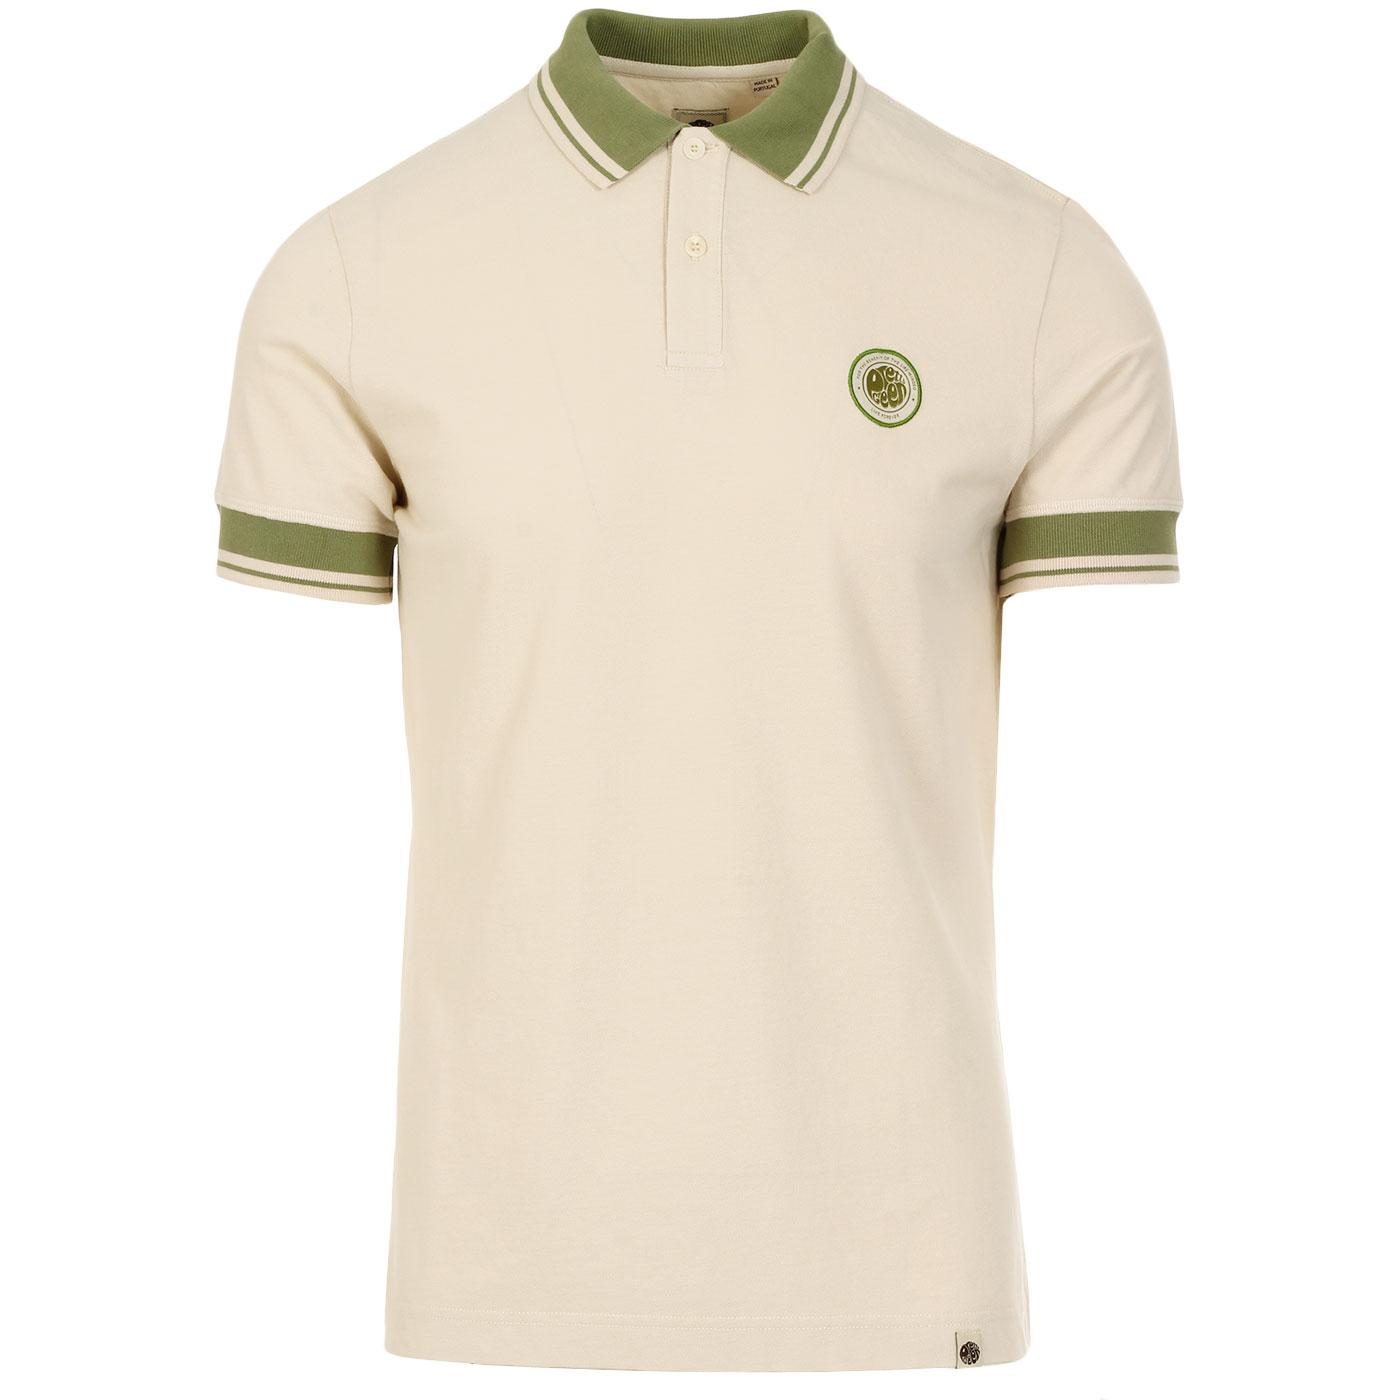 PRETTY GREEN Likeminded Contrast Collar Badge Polo